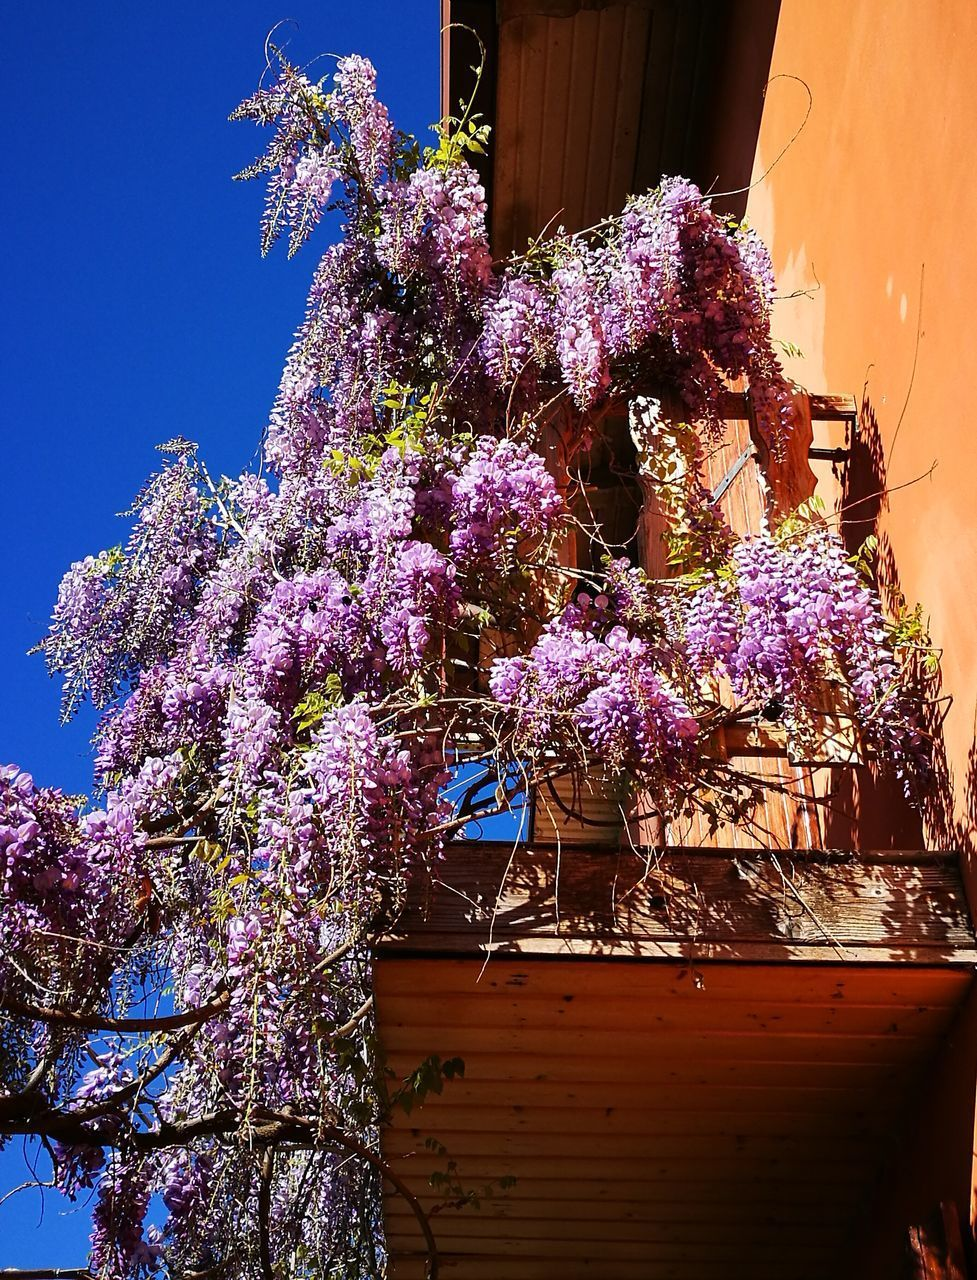 flower, purple, fragility, freshness, wisteria, growth, blossom, low angle view, tree, nature, no people, beauty in nature, springtime, day, built structure, branch, outdoors, pink color, building exterior, lilac, sunlight, blooming, architecture, flower head